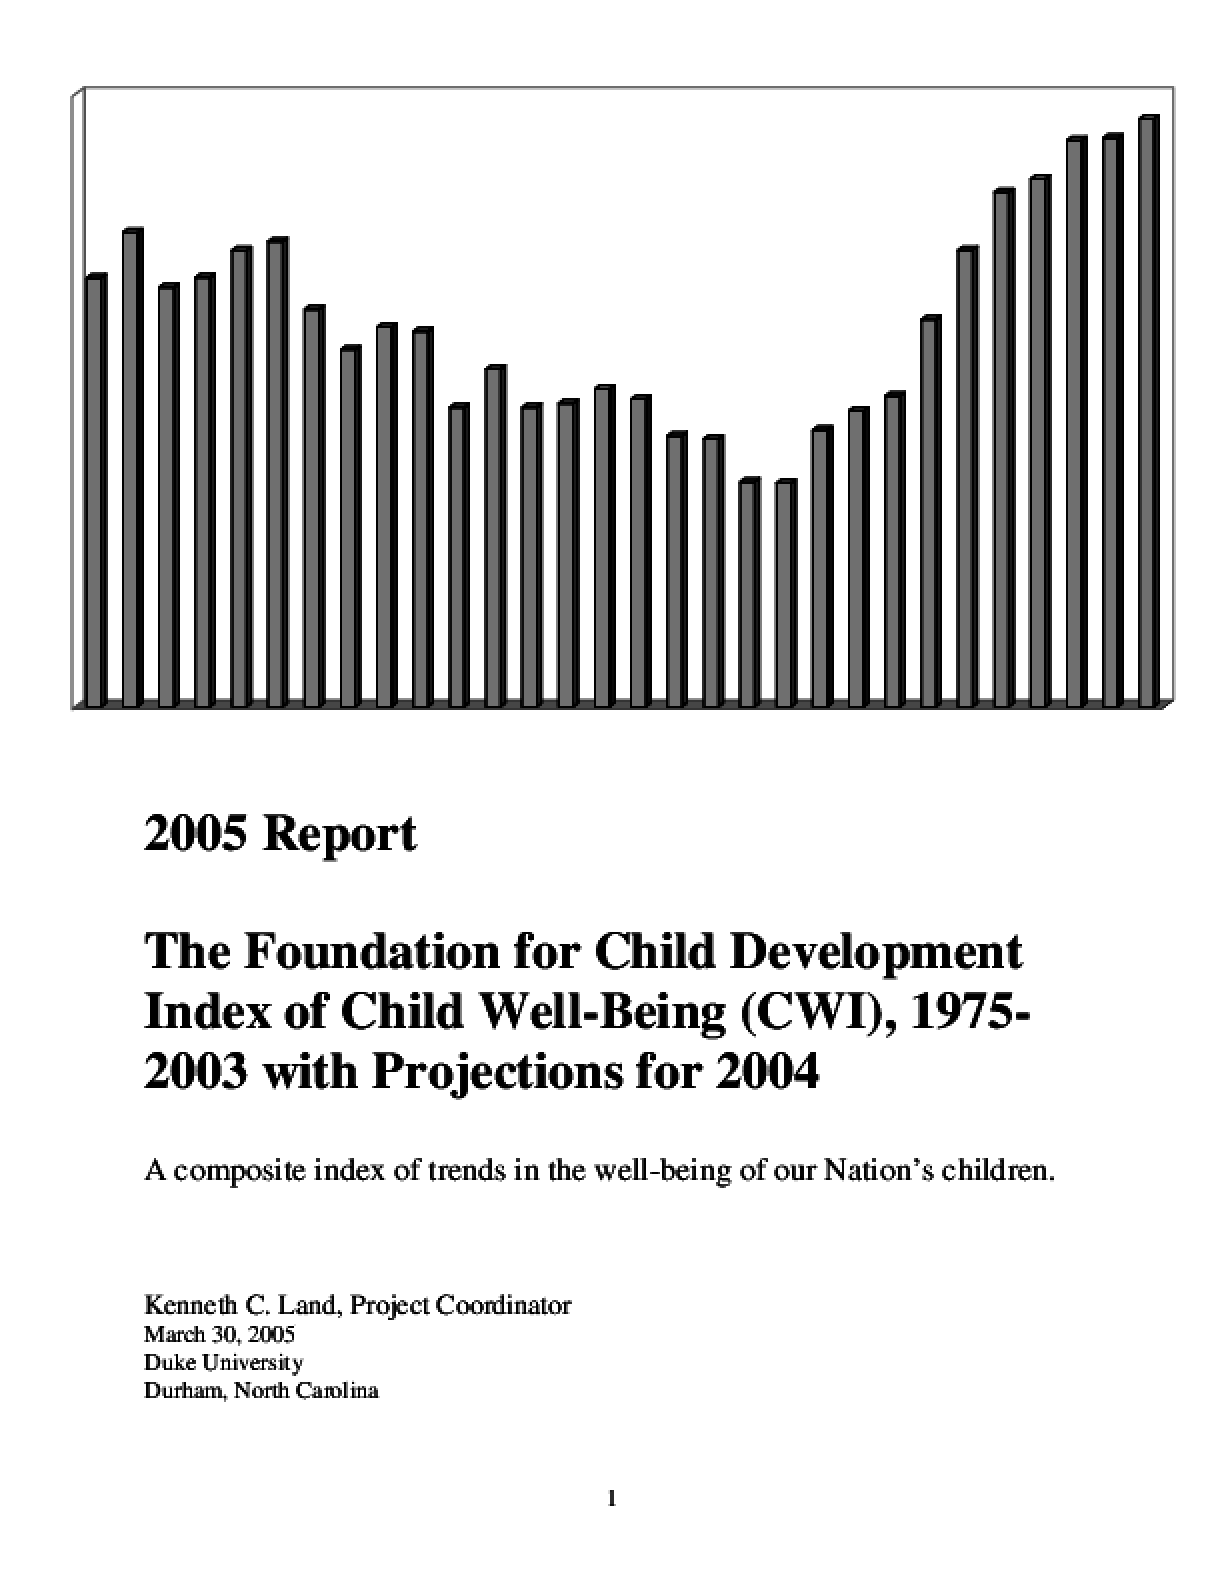 2005 Index of Child Well-Being